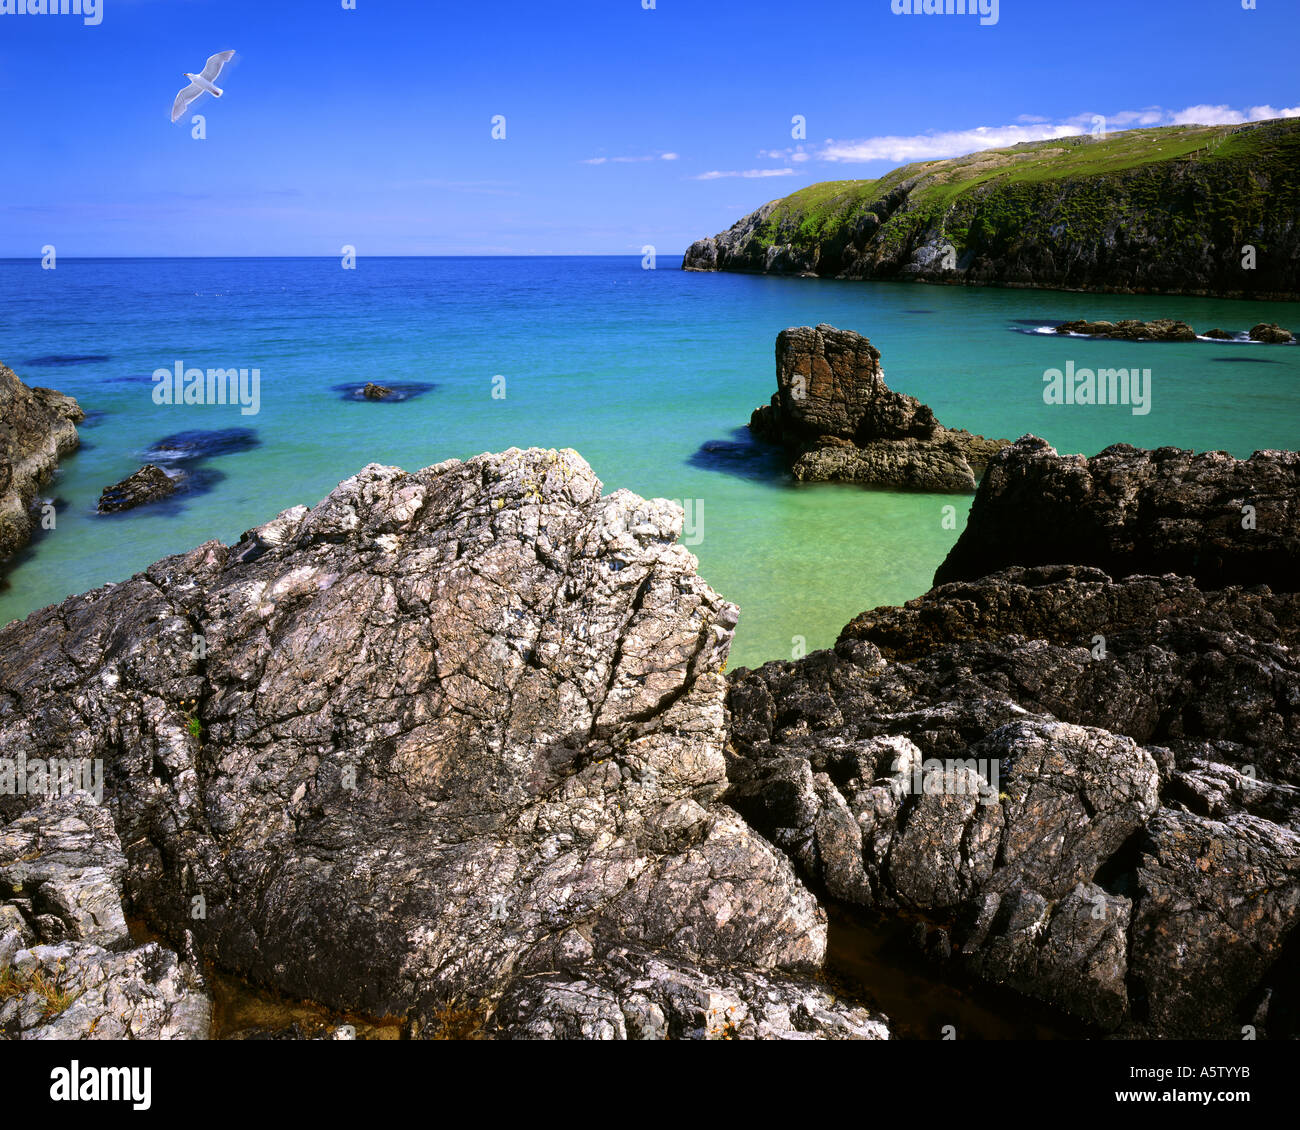 GB - SCOTLAND:  Sango Bay near Durness in the Highlands - Stock Image